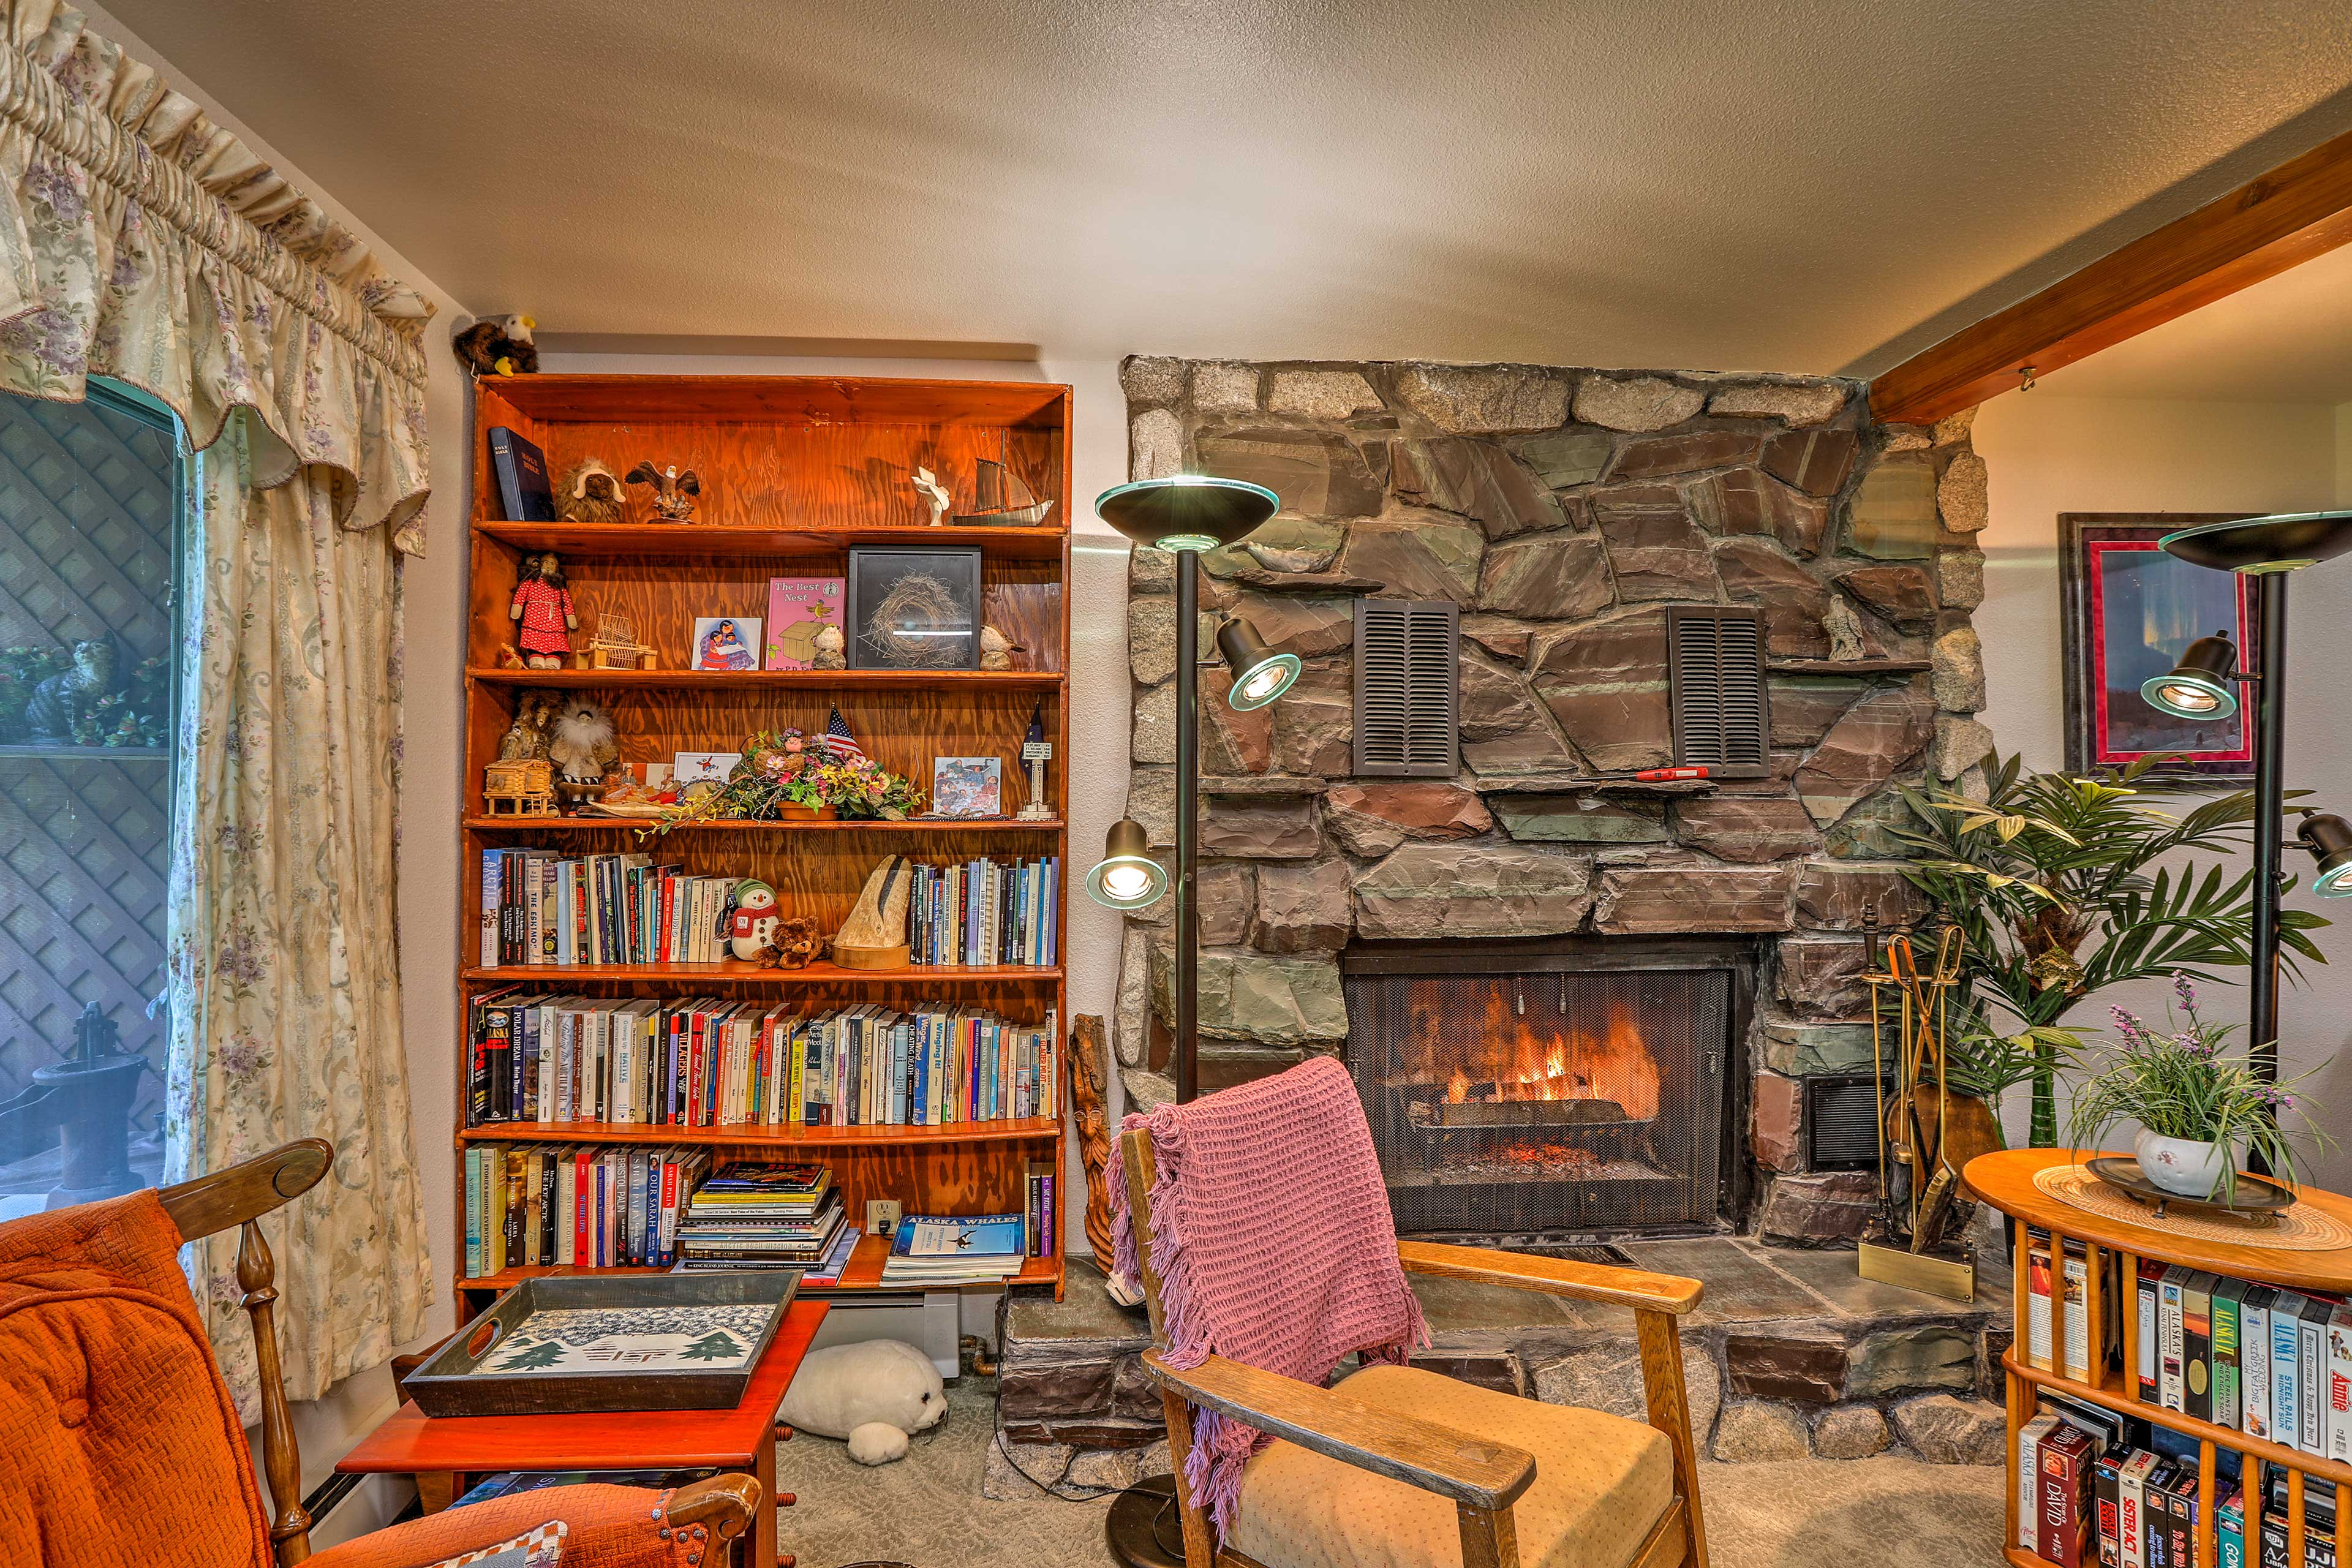 The wood-burning stone fireplace will fill the whole studio with warmth.